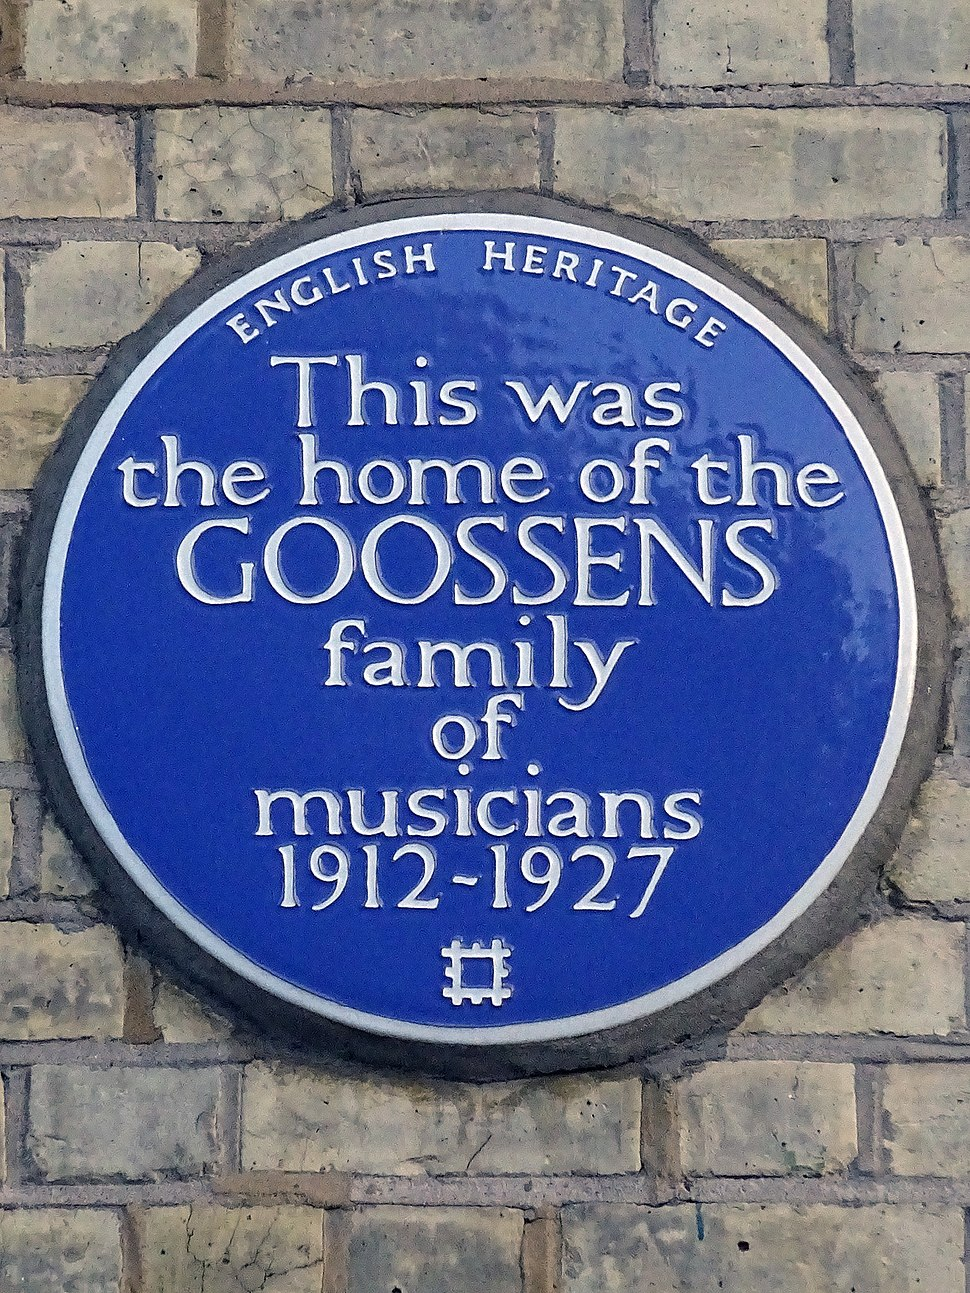 This was the home of the GOOSSENS family of musicians 1912-1927